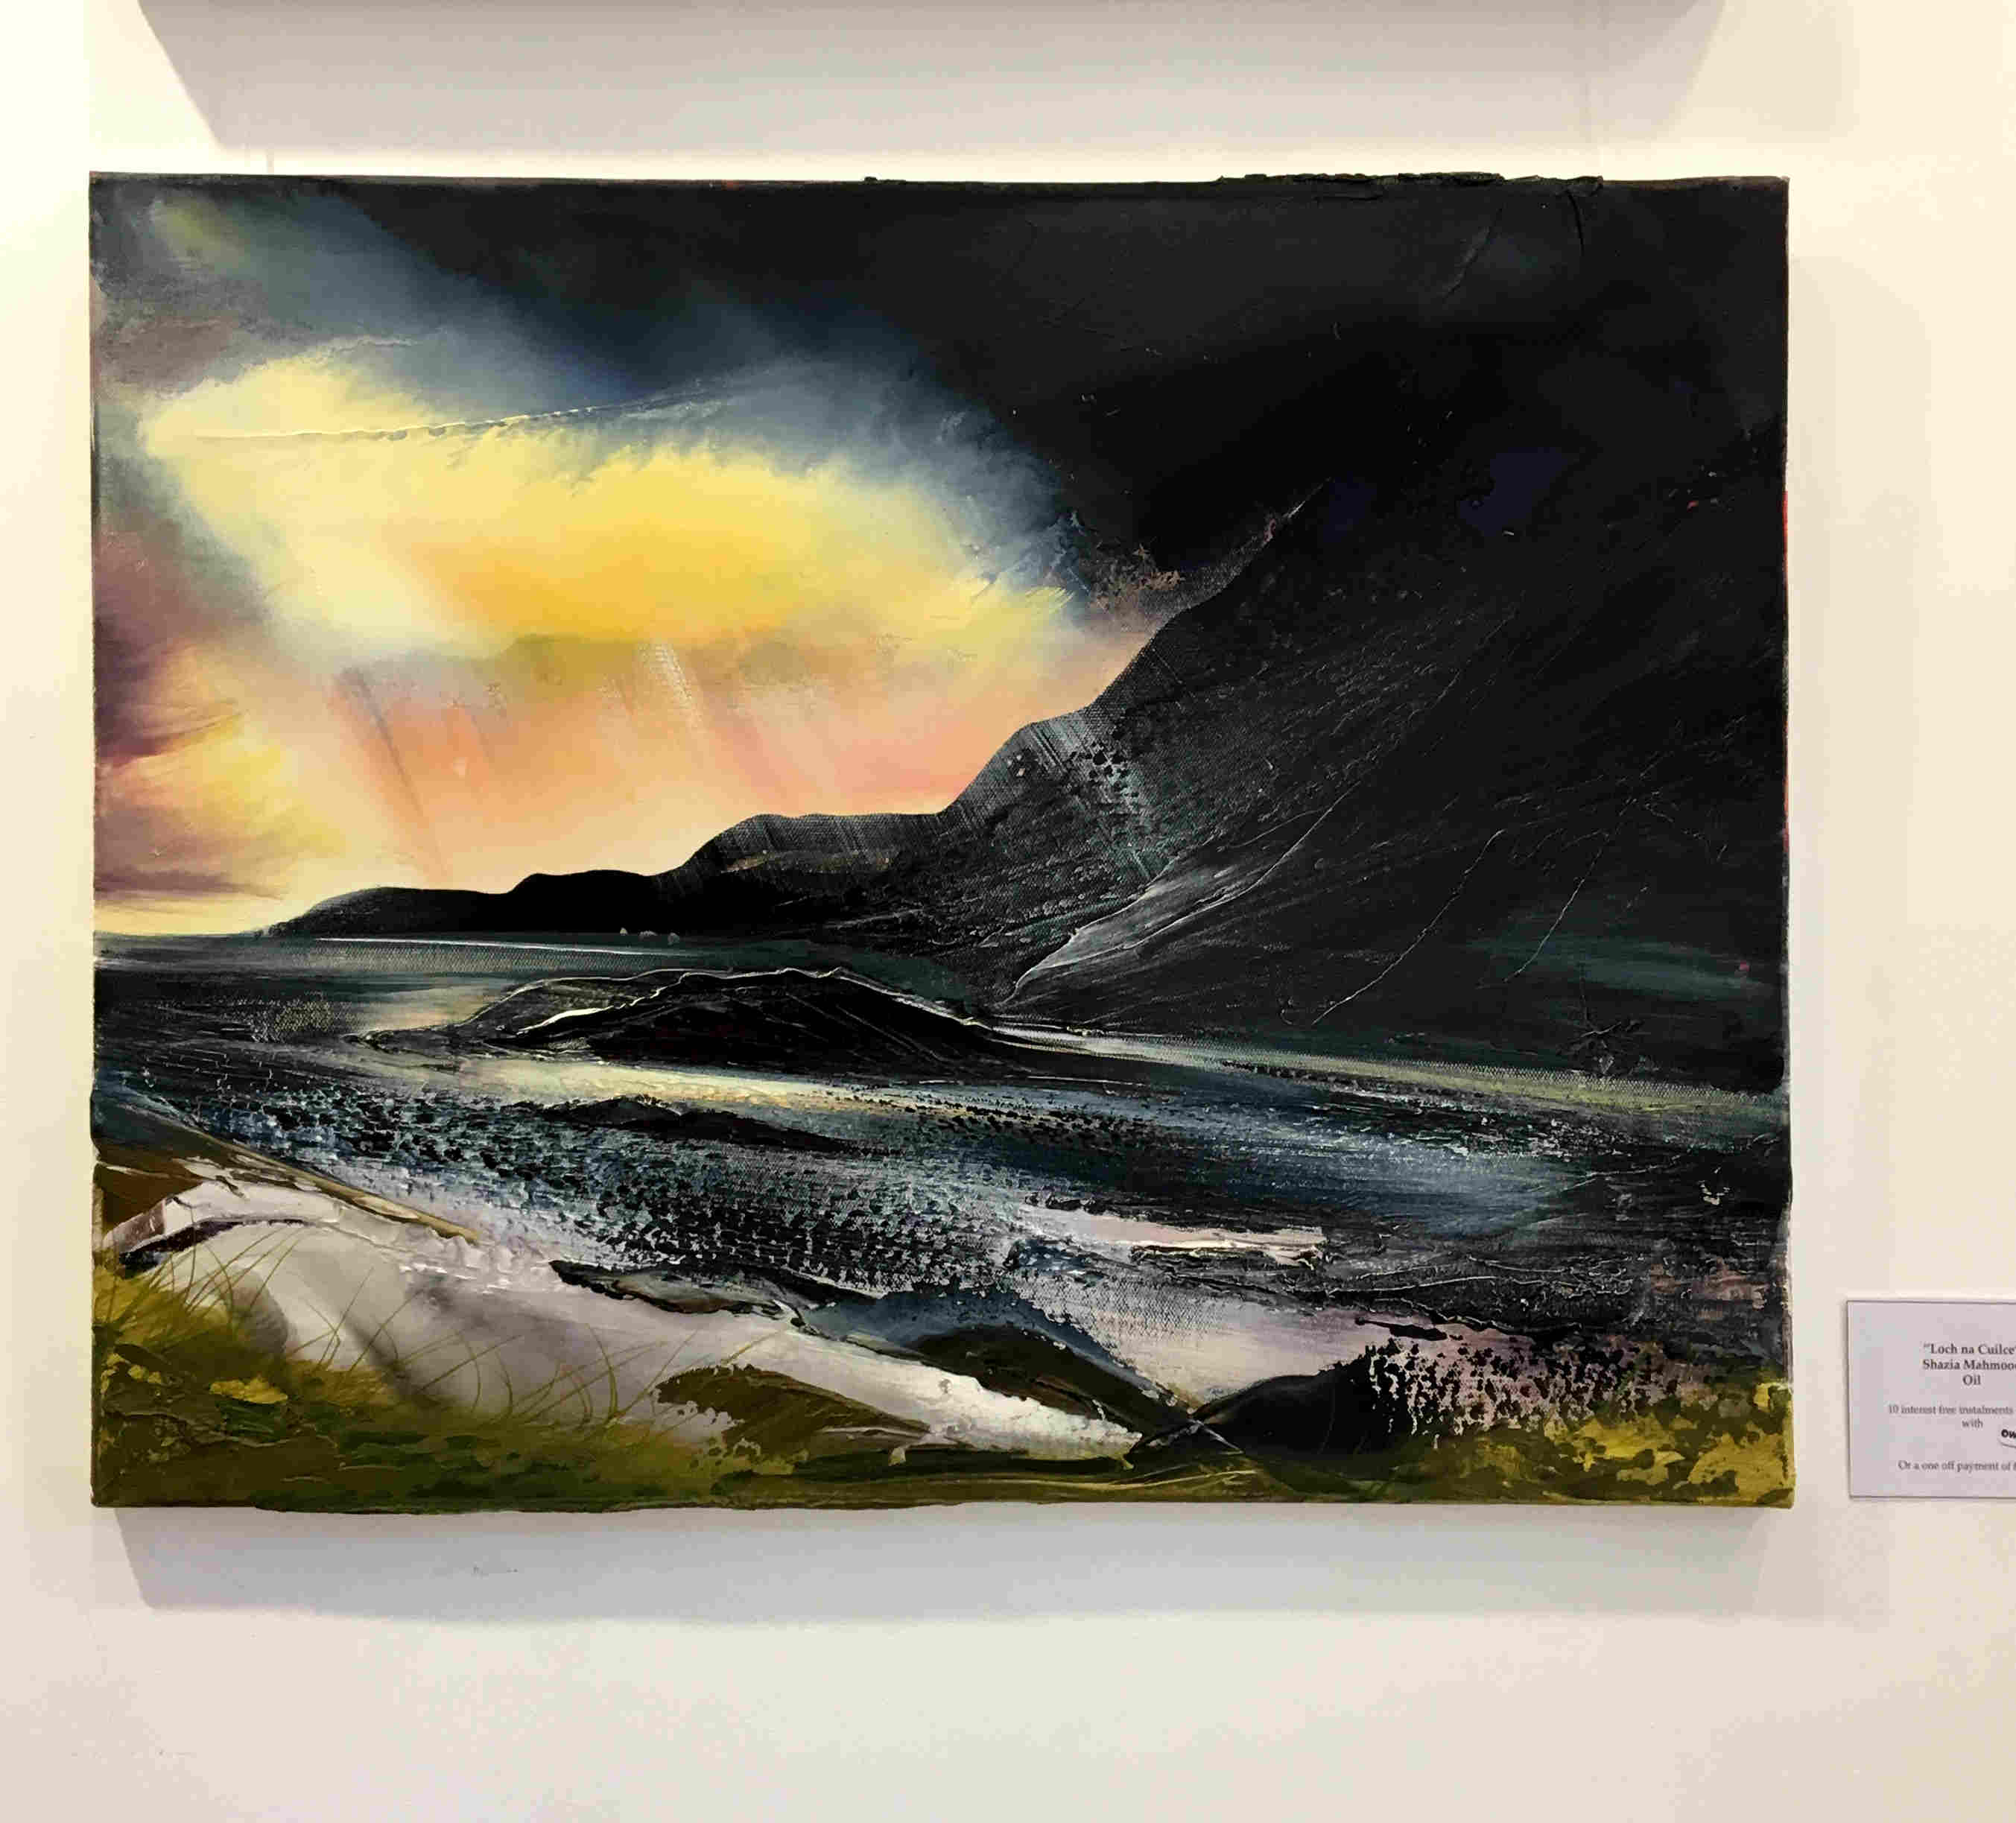 'Loch na Cuilce' by artist Shazia Mahmood